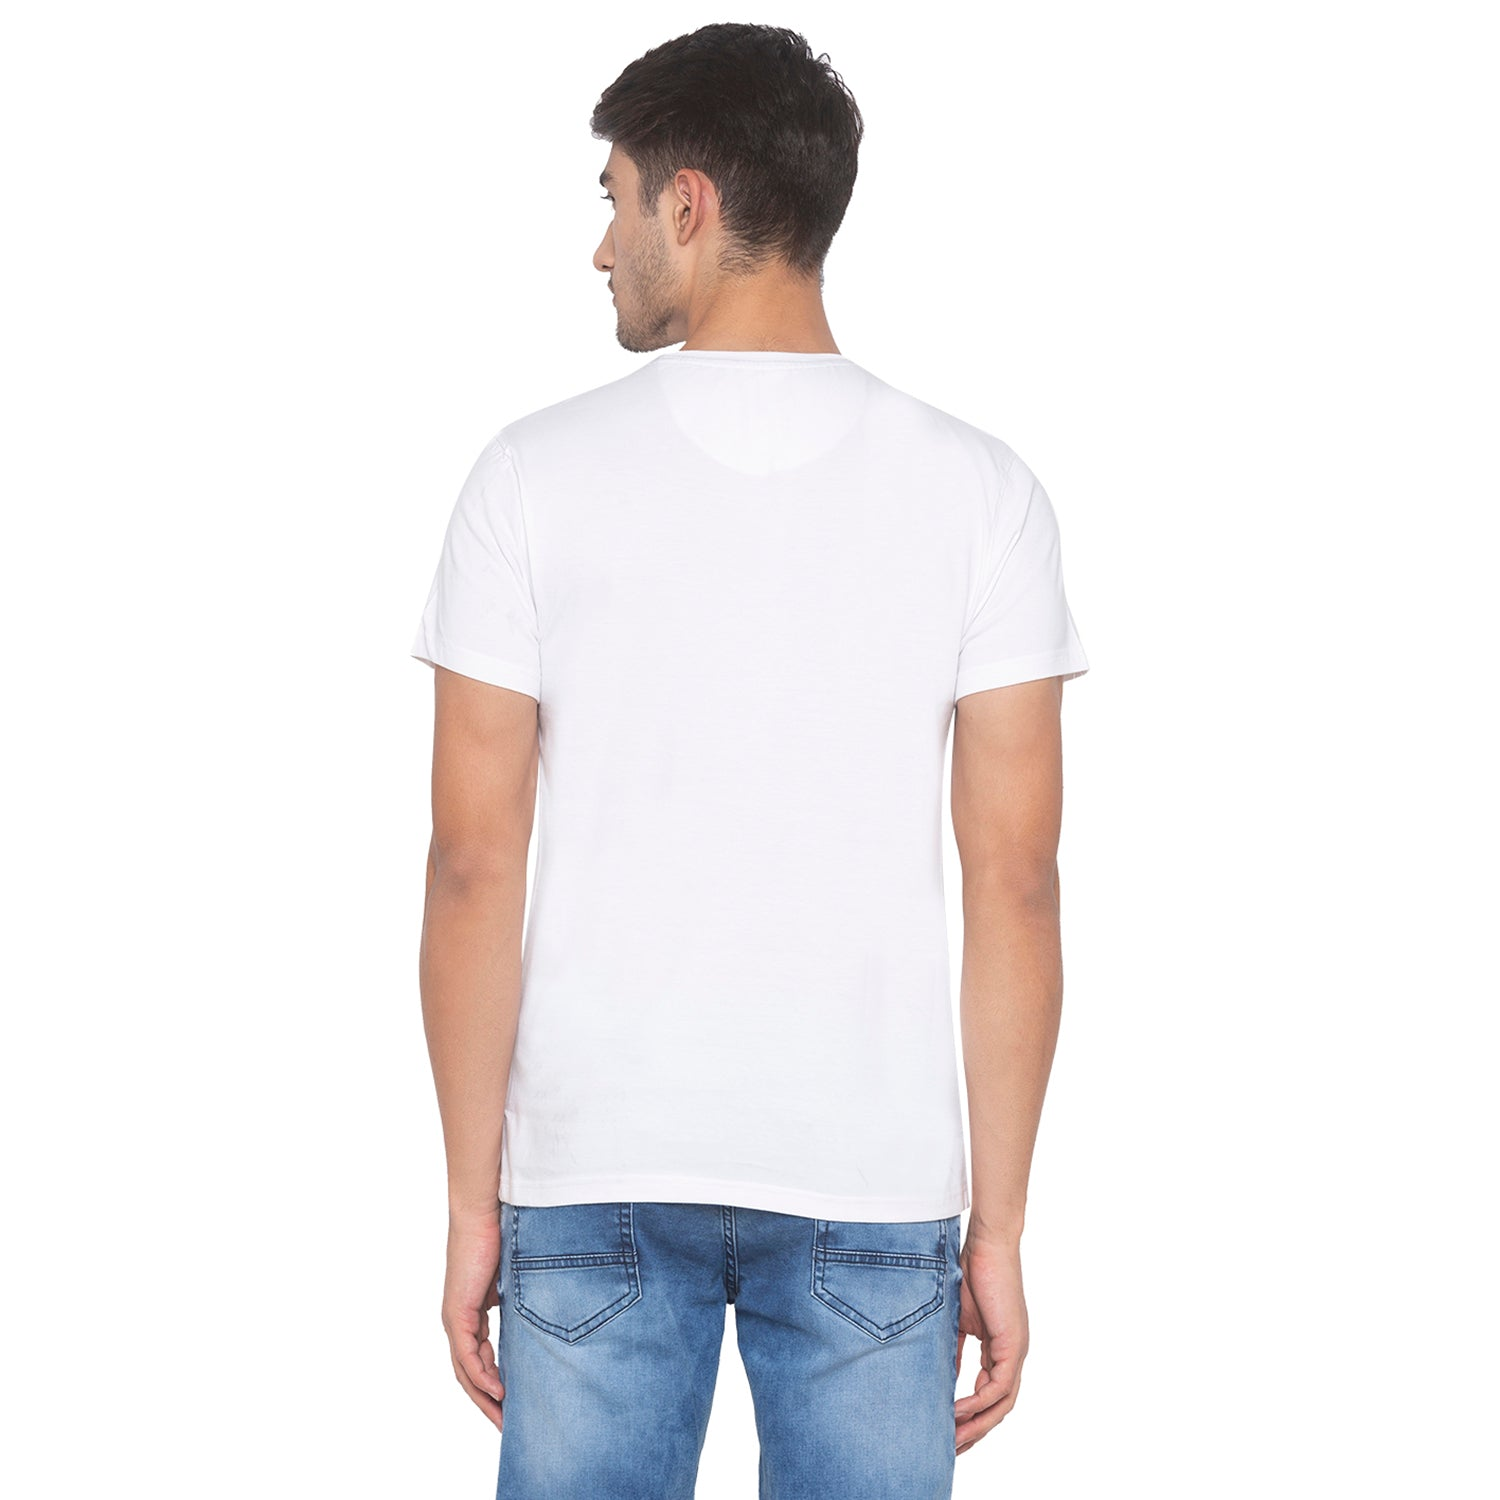 White Printed T-Shirt-3